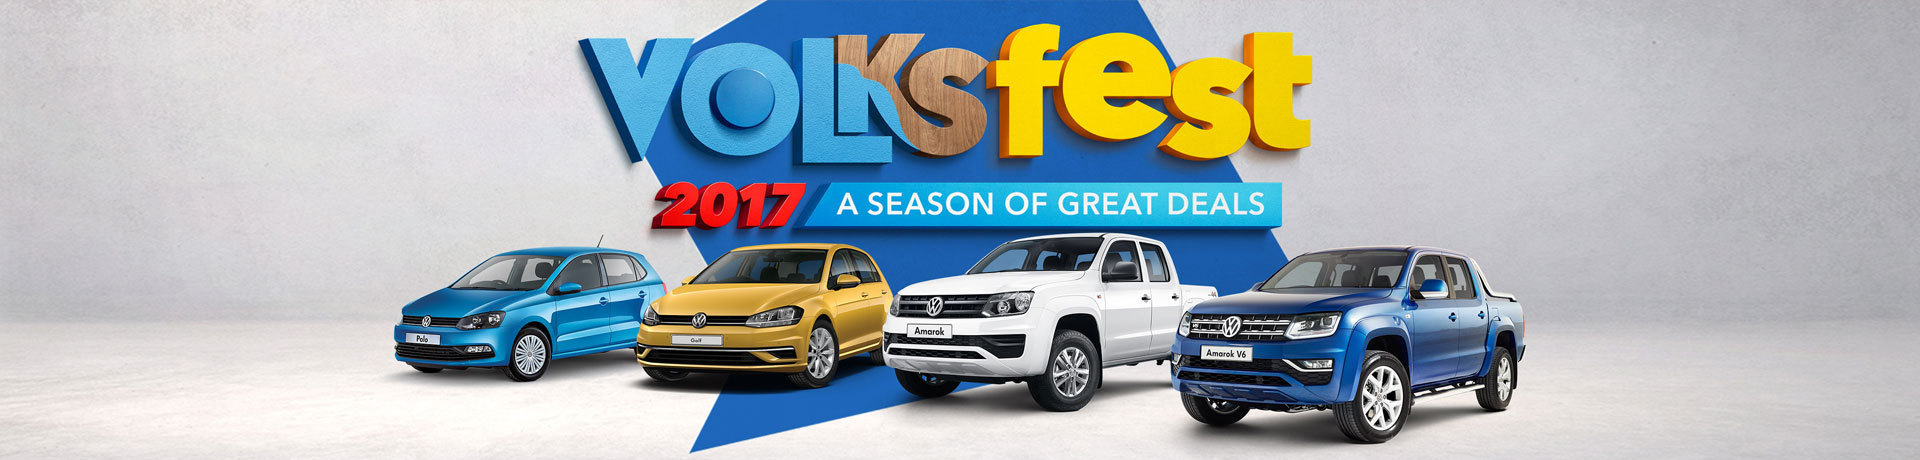 Volksfest at Kinghorn Volkswagen